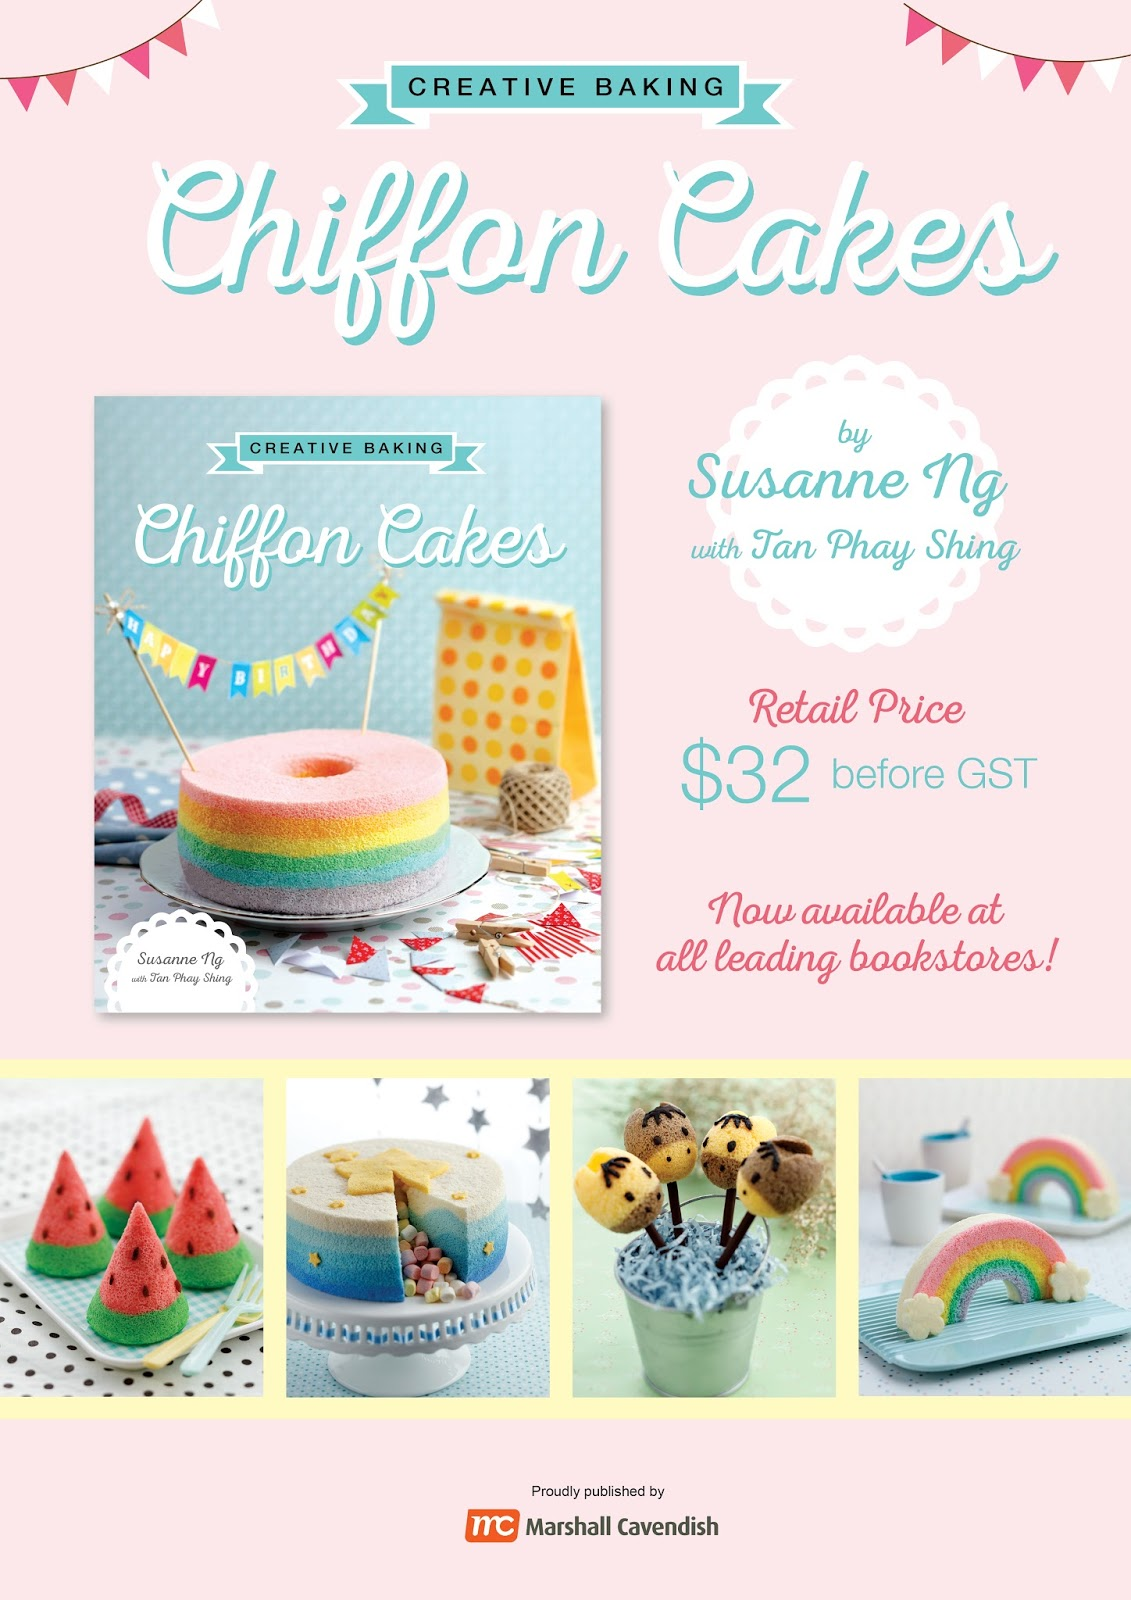 Loving Creations For You Creative Baking Chiffon Cakes